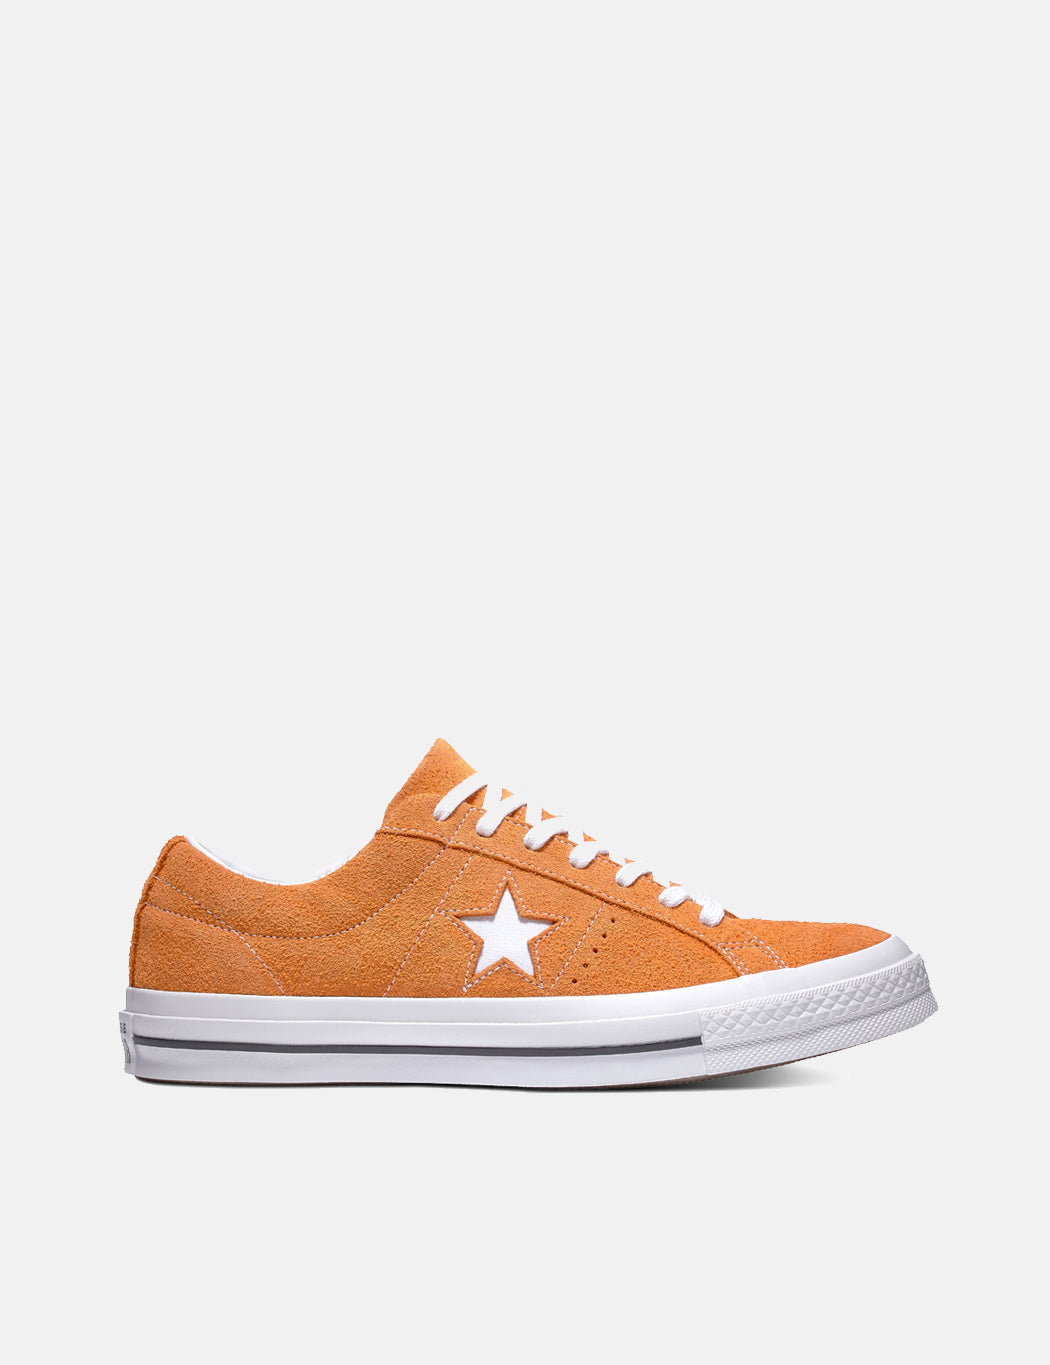 c0cec7c1d6e5 Converse One Star Ox Low Suede (161574C) in Bold Mandarin Orange White White